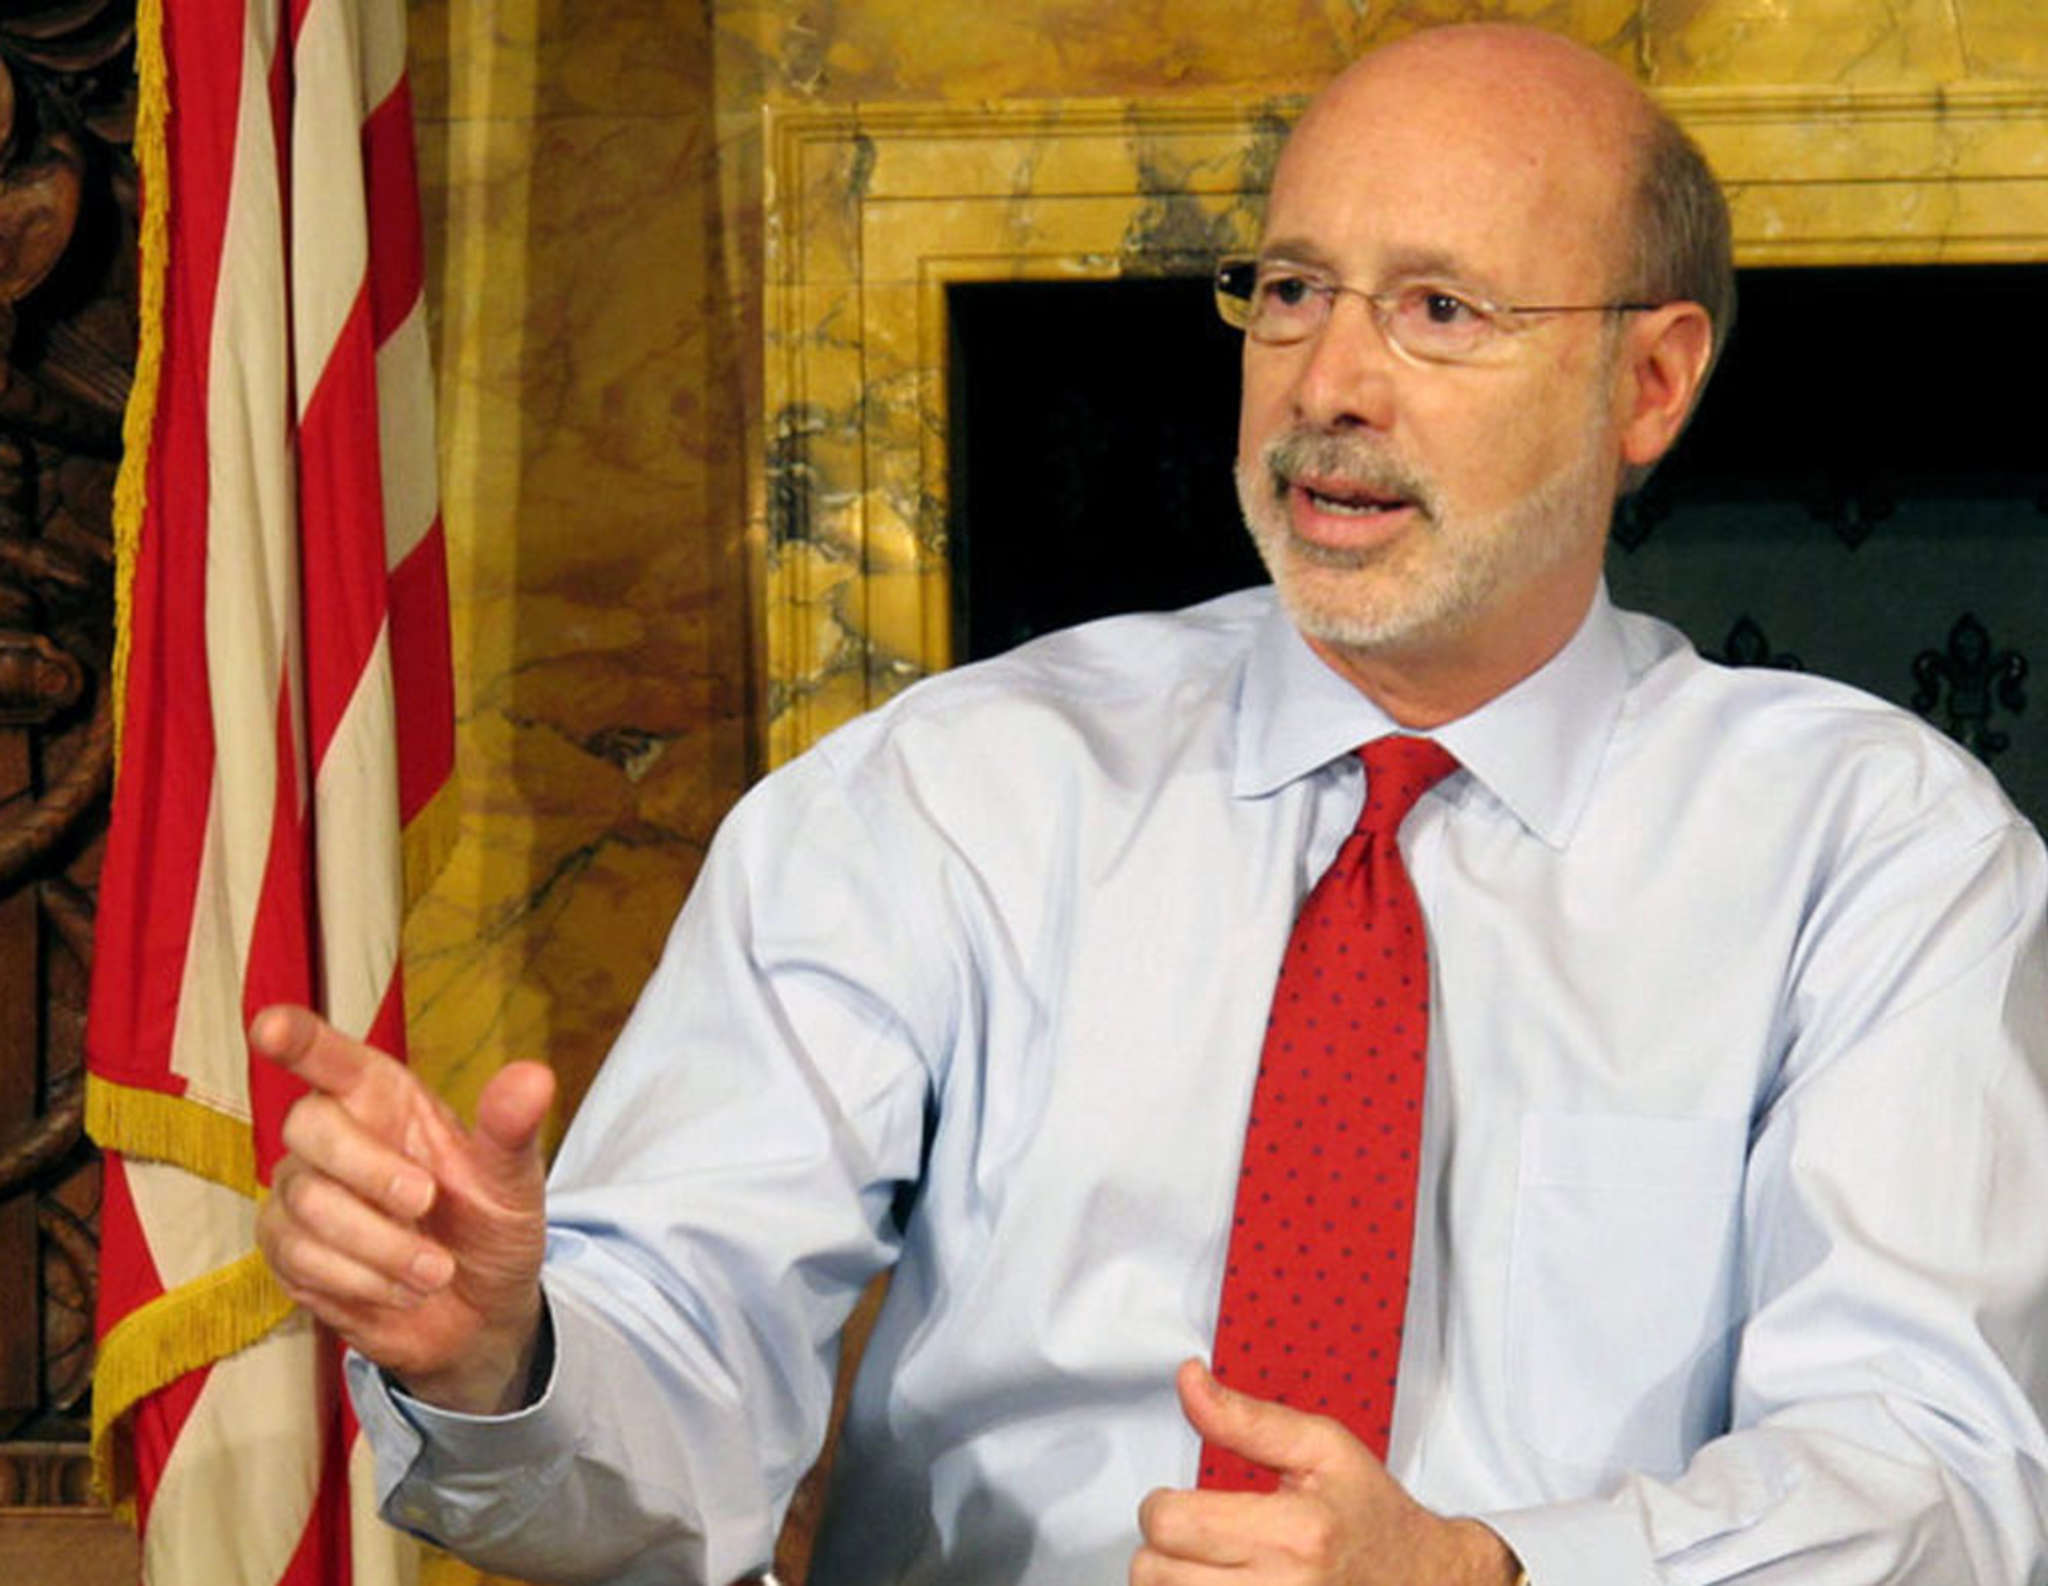 Gov. Wolf backed off his plan to raise taxes, which isn´t surprising during a legislative election year in need of a quiet budget agreement without crisis.